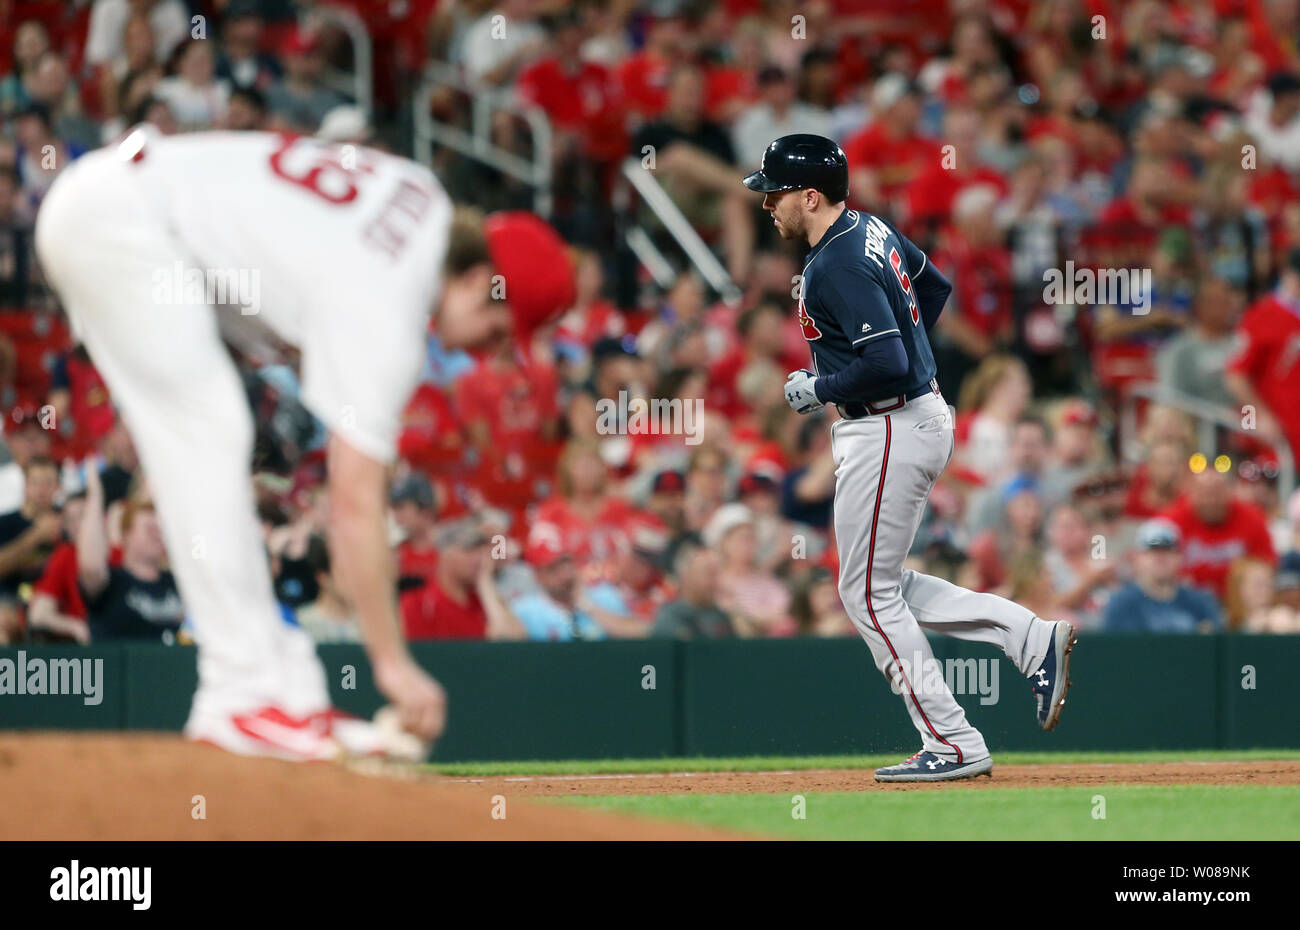 Atlanta Braves Freddie Freeman rounds third base, hitting a solo home run as St. Louis Cardinals starting pitcher Miles Mikolas reaches for the rozin bag in the sixth inning at Busch Stadium in St. Louis on May 24, 2019. Photo by Bill Greenblatt/UPI Stock Photo